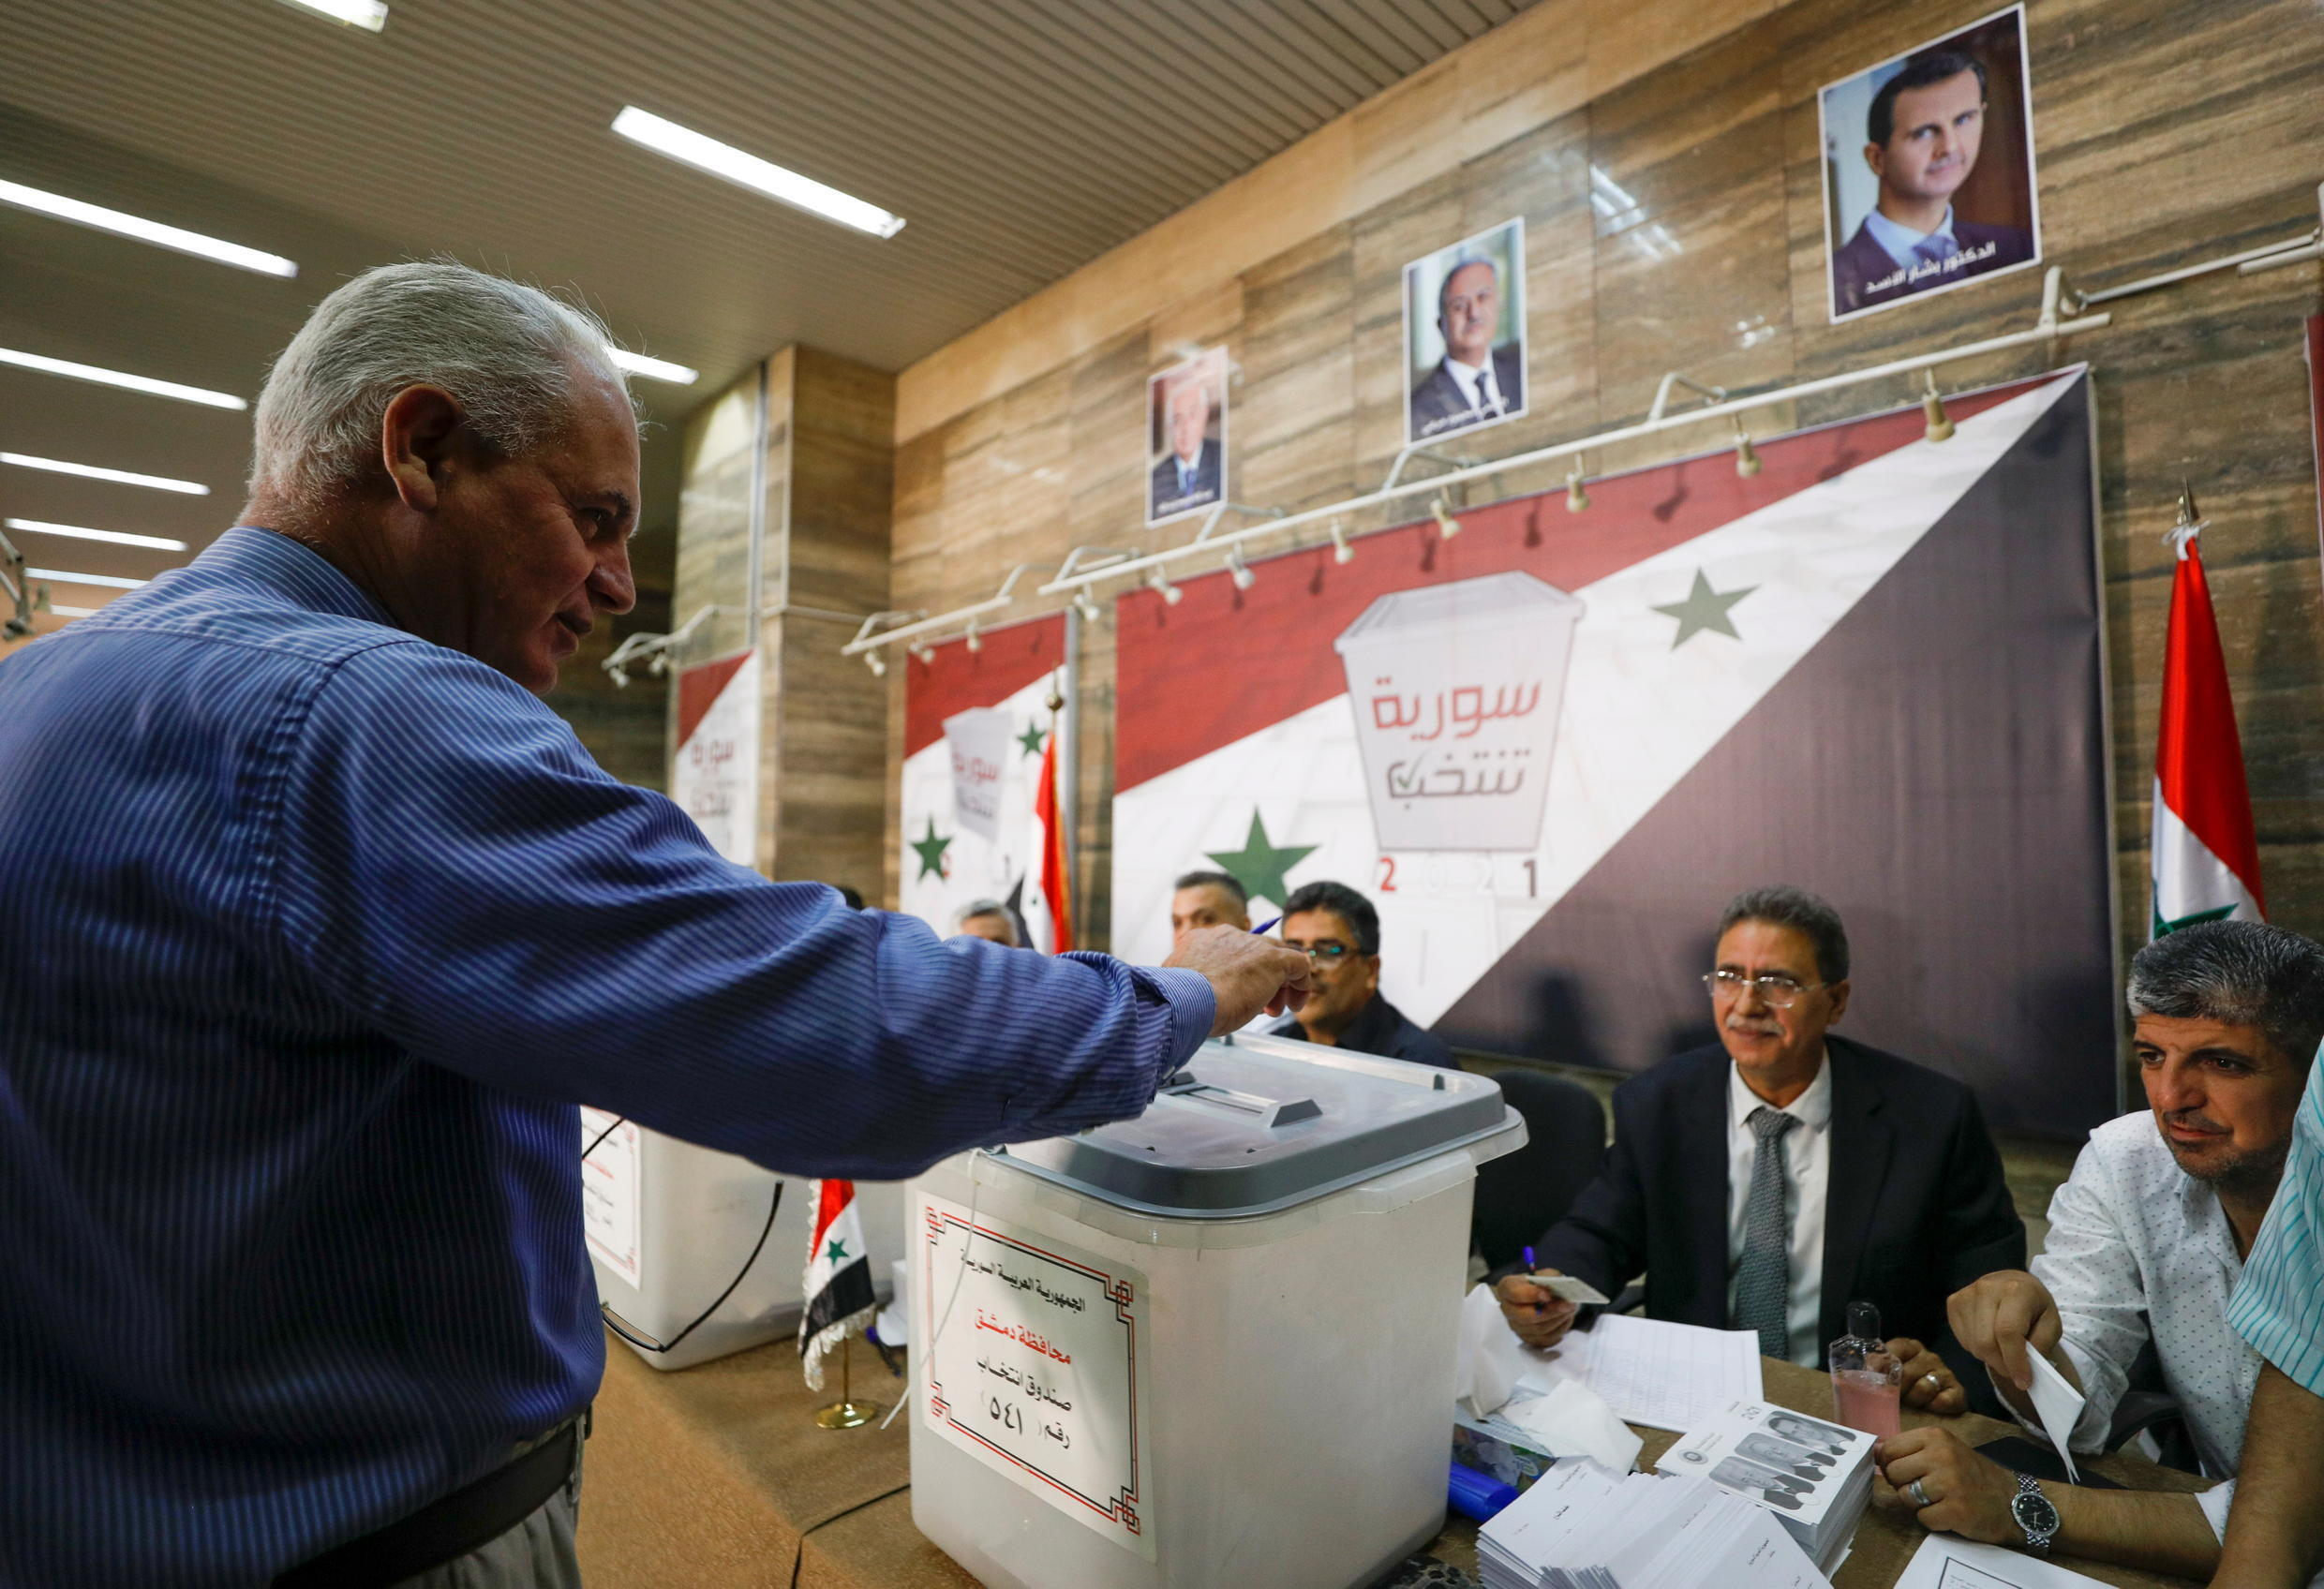 2021-05-26T052445Z_2064151218_RC2HNN9M6L0O_RTRMADP_3_SYRIA-SECURITY-ELECTION